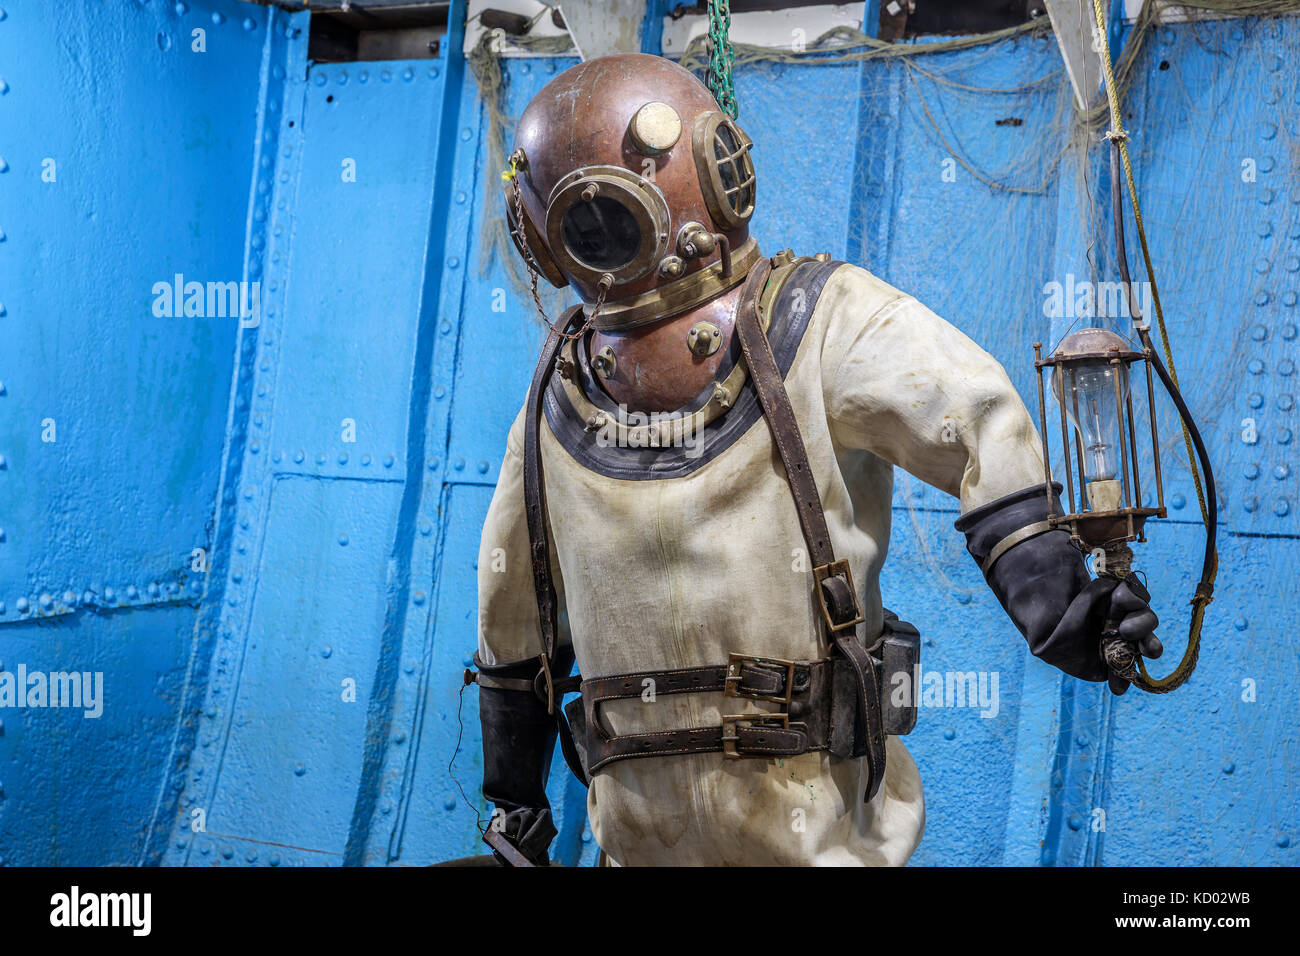 Antique diving suit, Marine Museum of Manitoba, Selkirk, Manitoba, Canada - Stock Image